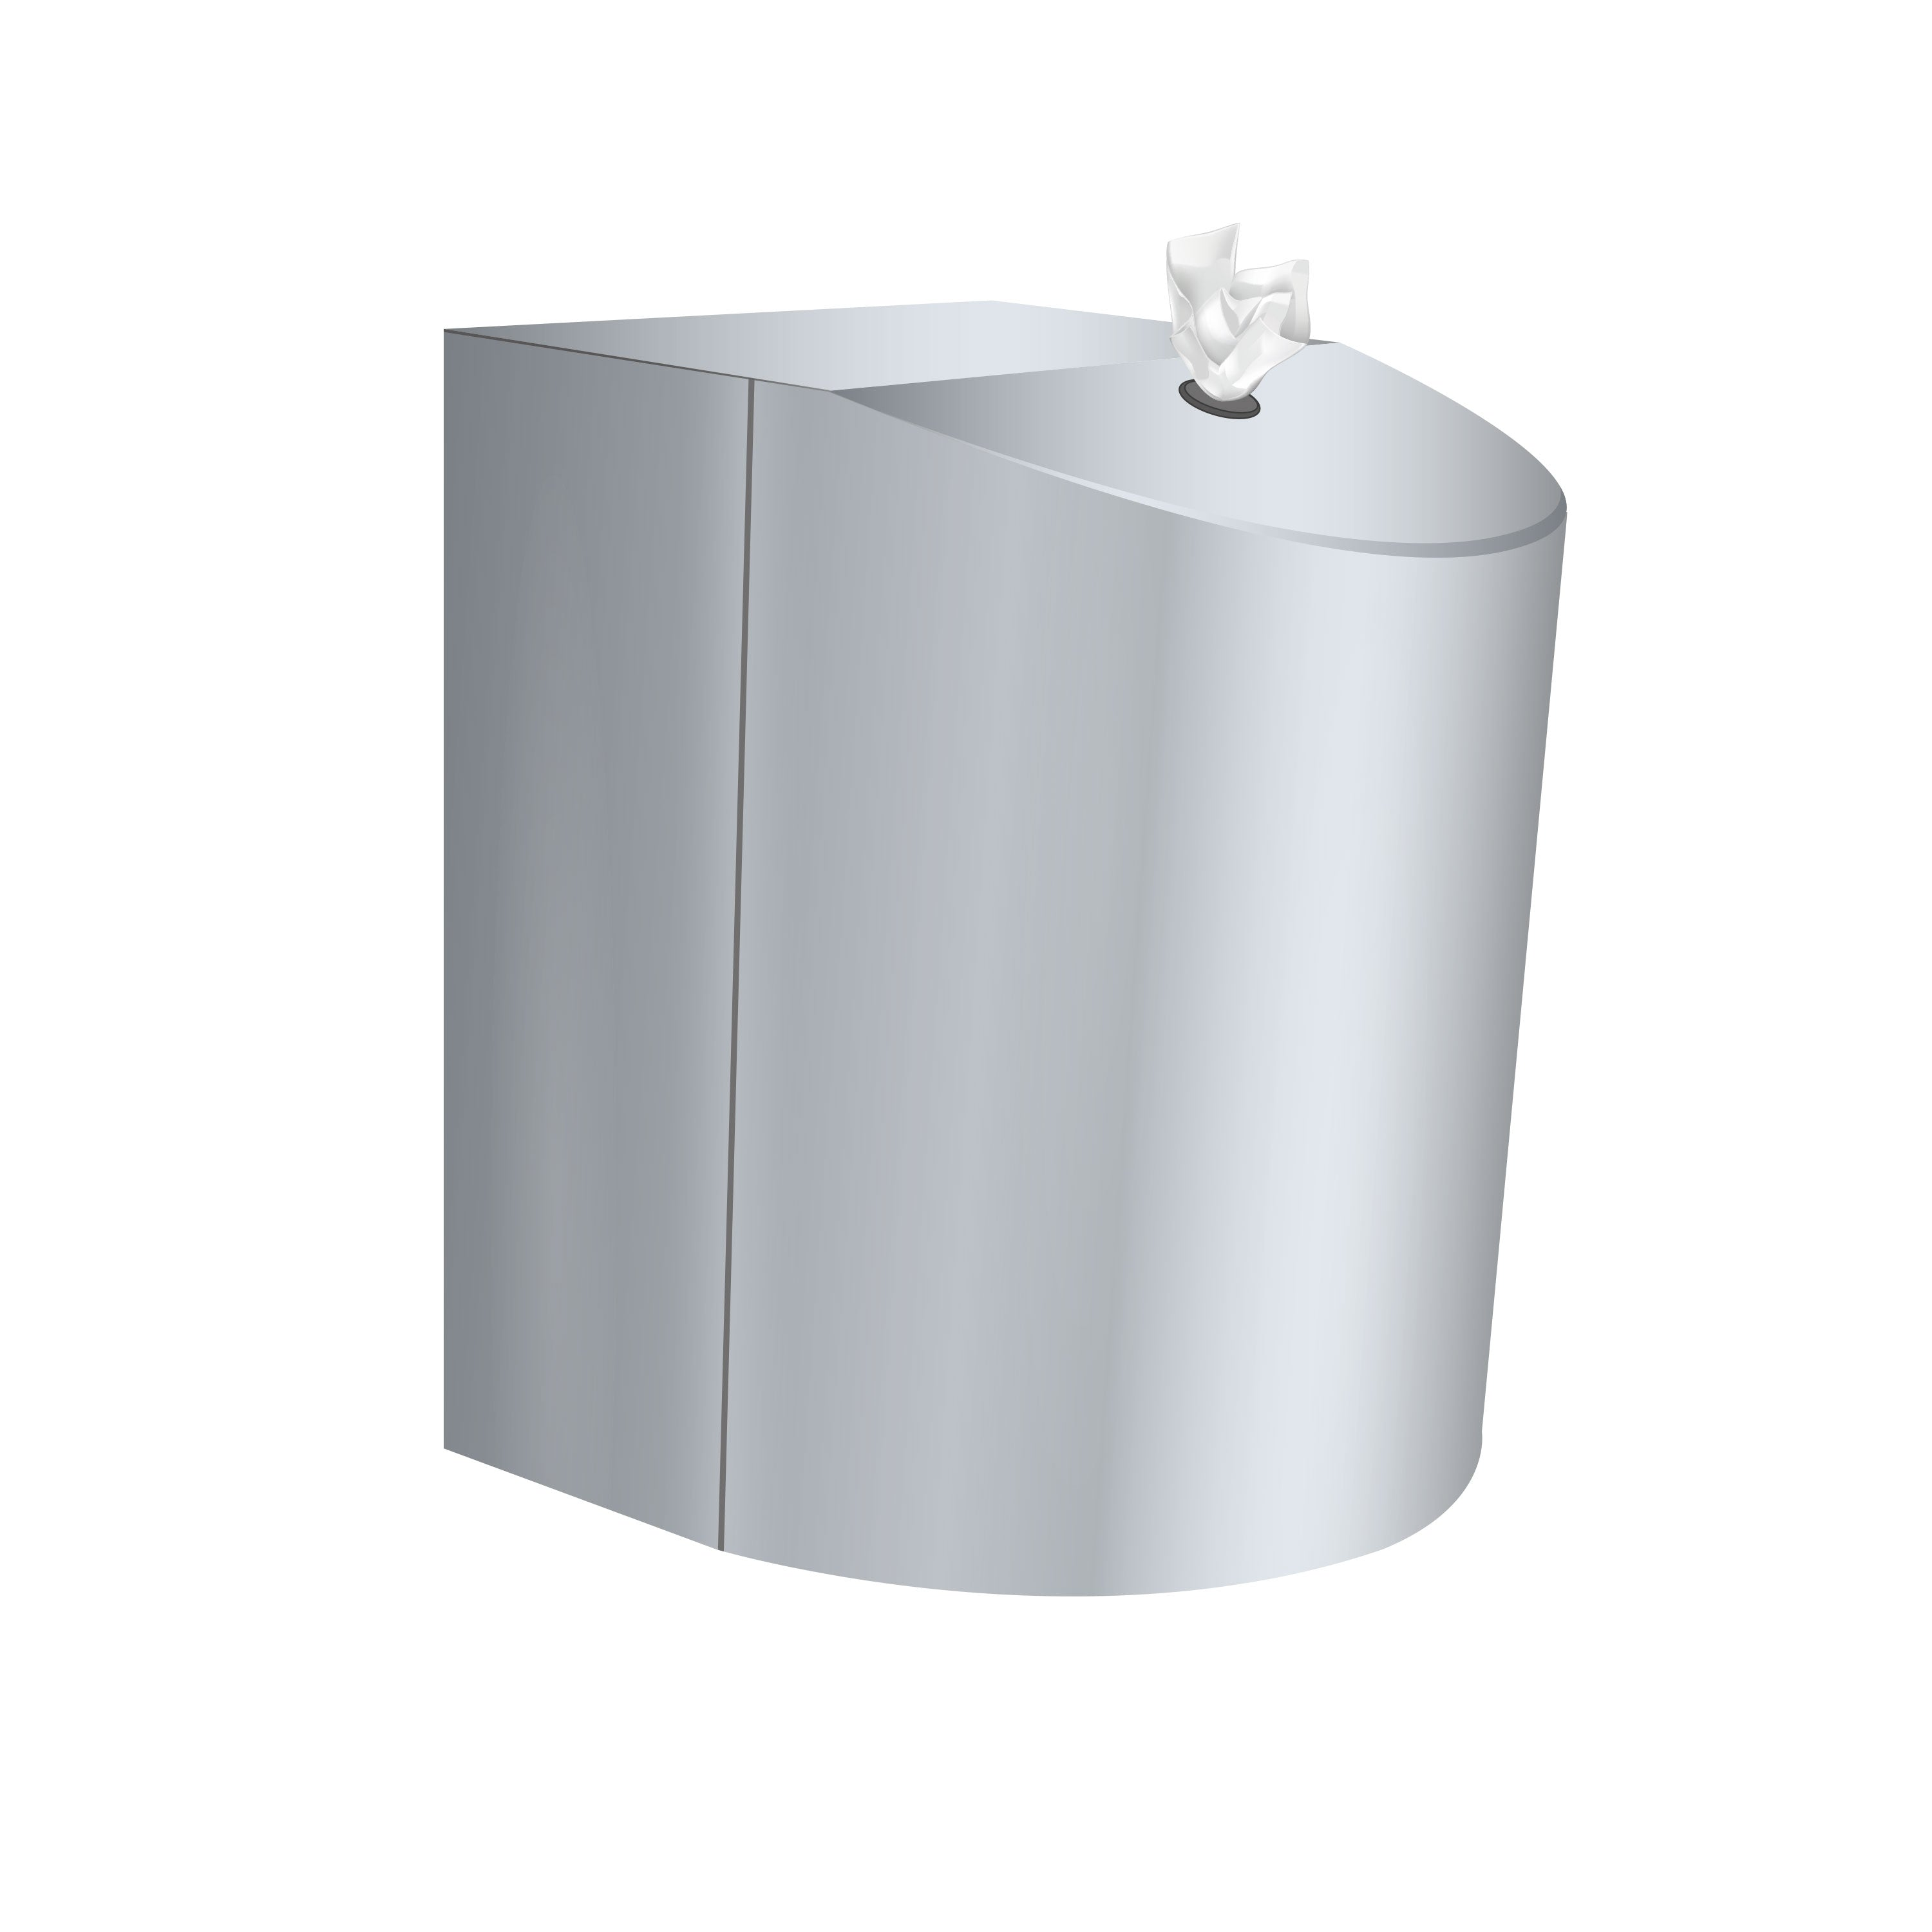 Antibacterial Hand & Surface Wet Wipes Polished Stainless Steel Wall mounted Dispenser